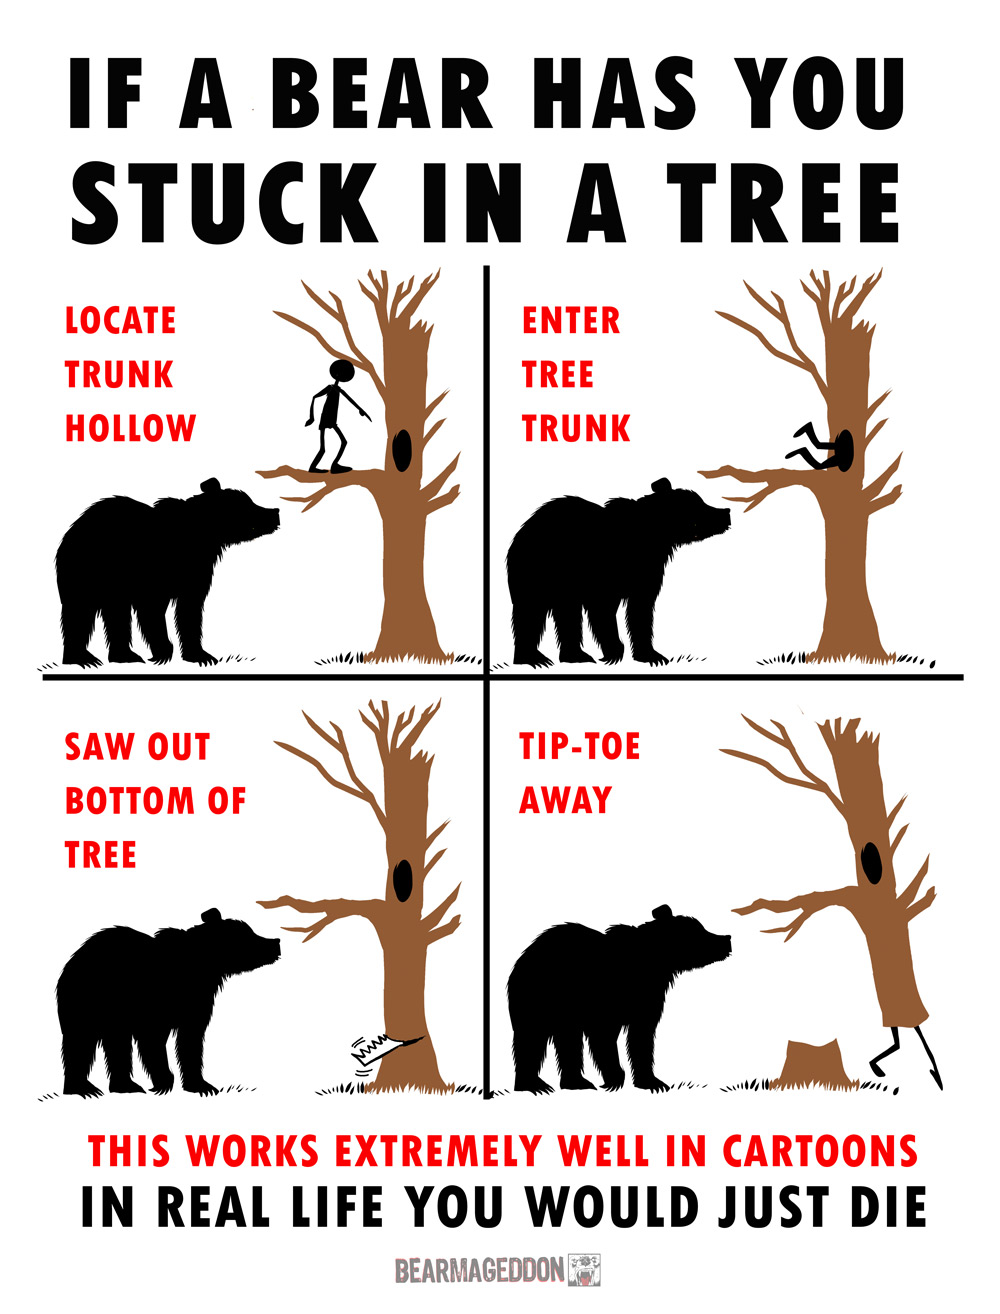 Bear-up-tree-CARTOON